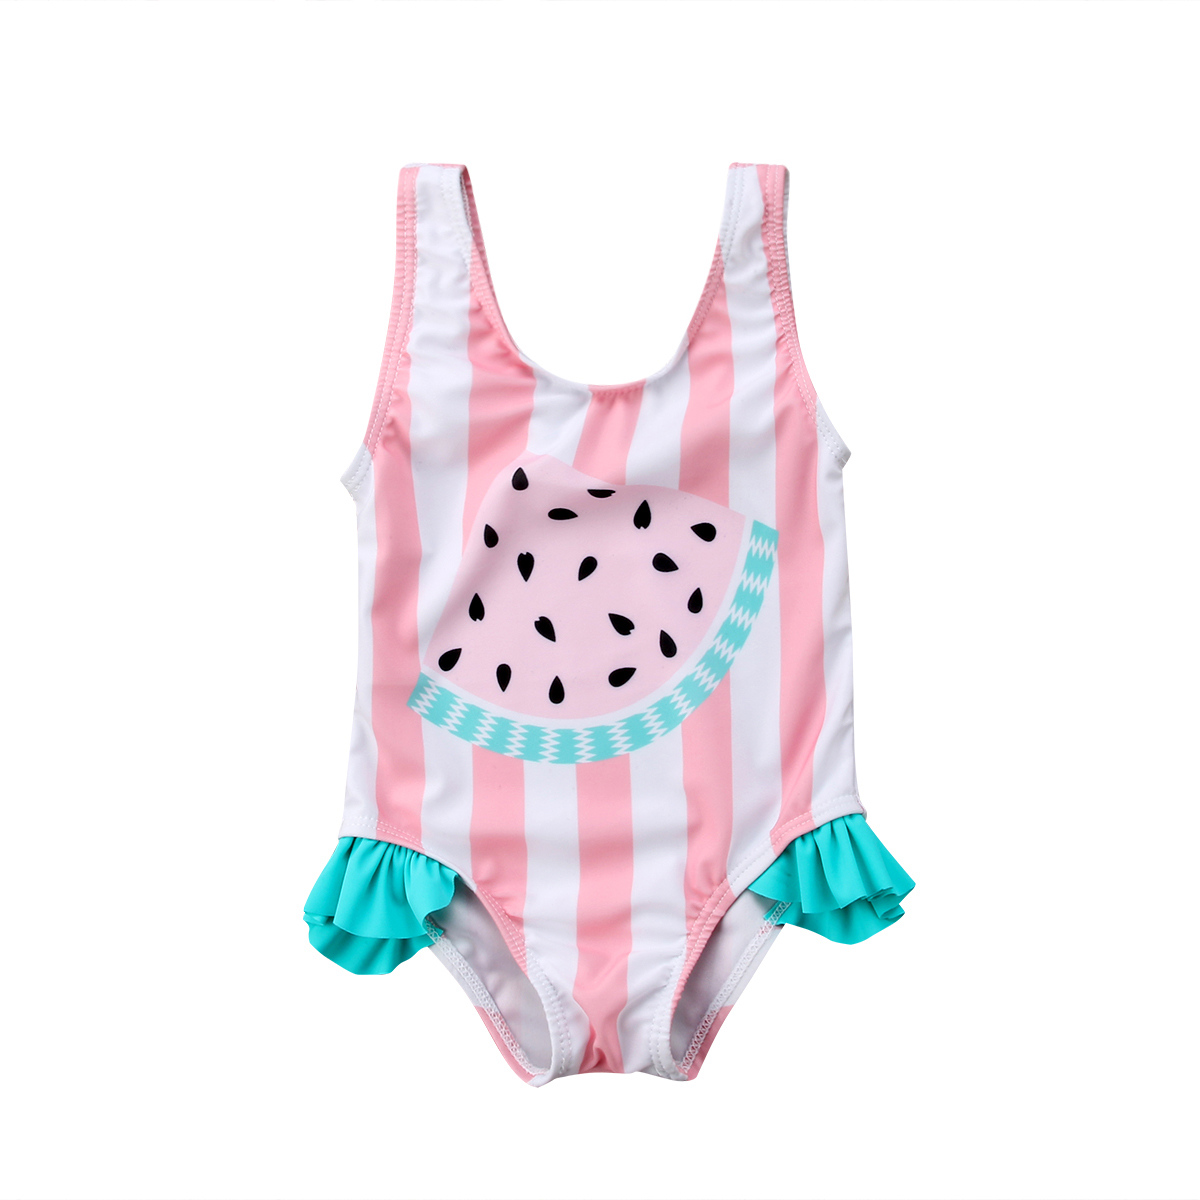 Toddler Newborn Baby Girls Watermelon Swimsuit Summer Baby Girl Beachwear Swimwear Bathi ...